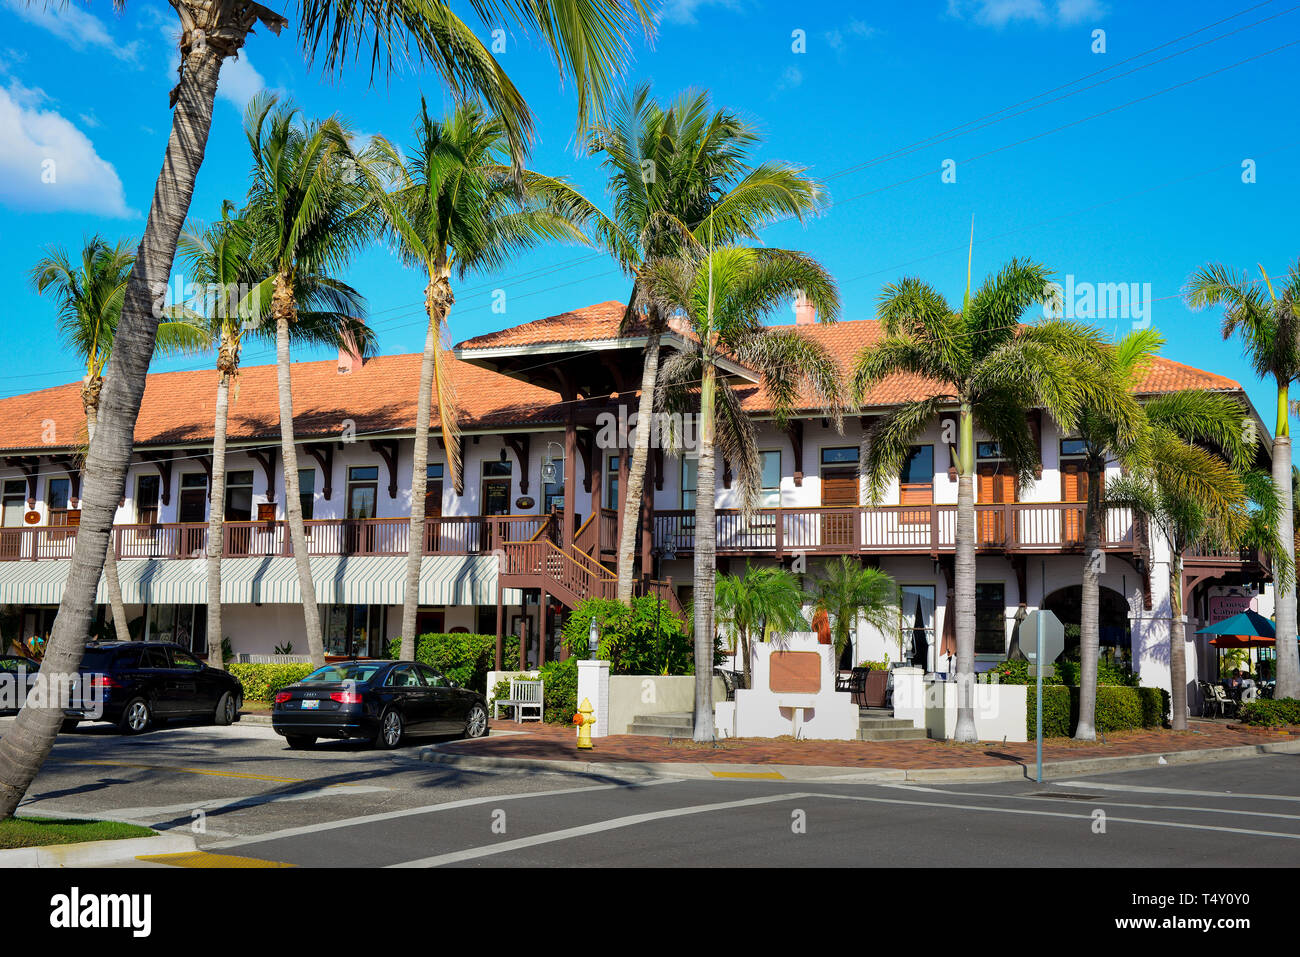 A beautiful, historic building that was once the depot for the railroad now houses shops and offices in downtown Boca Grande, FL, on Gasparilla Island Stock Photo